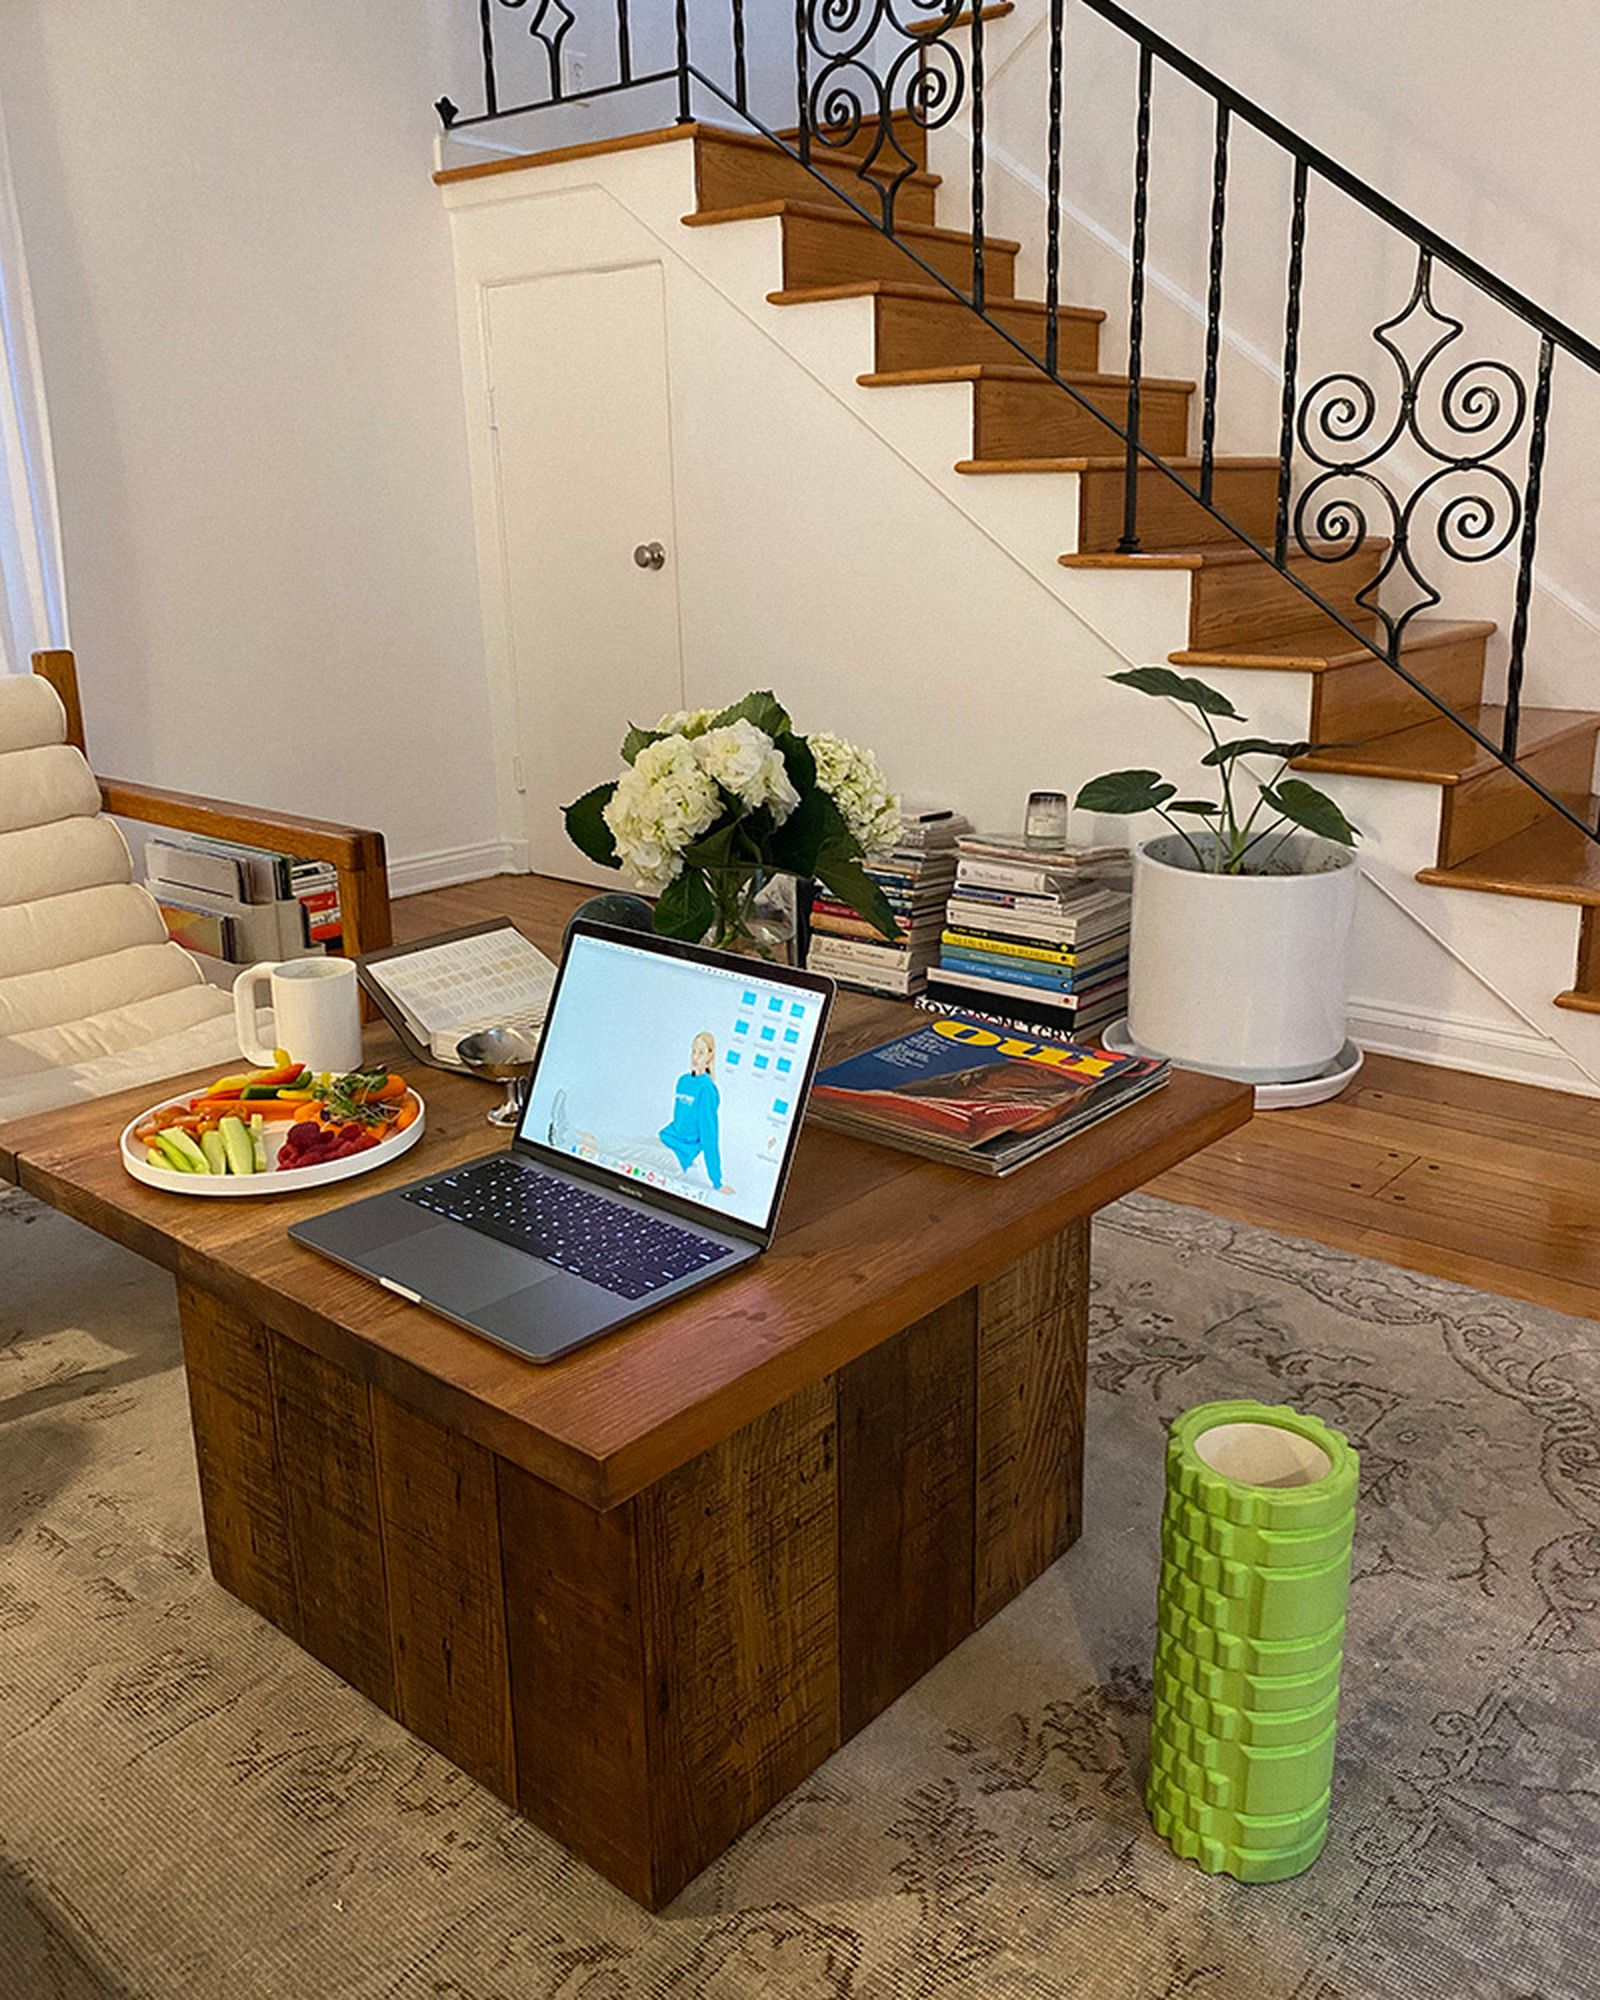 wfh-office-tour-look-inside-home-offices-emily-oberg-02